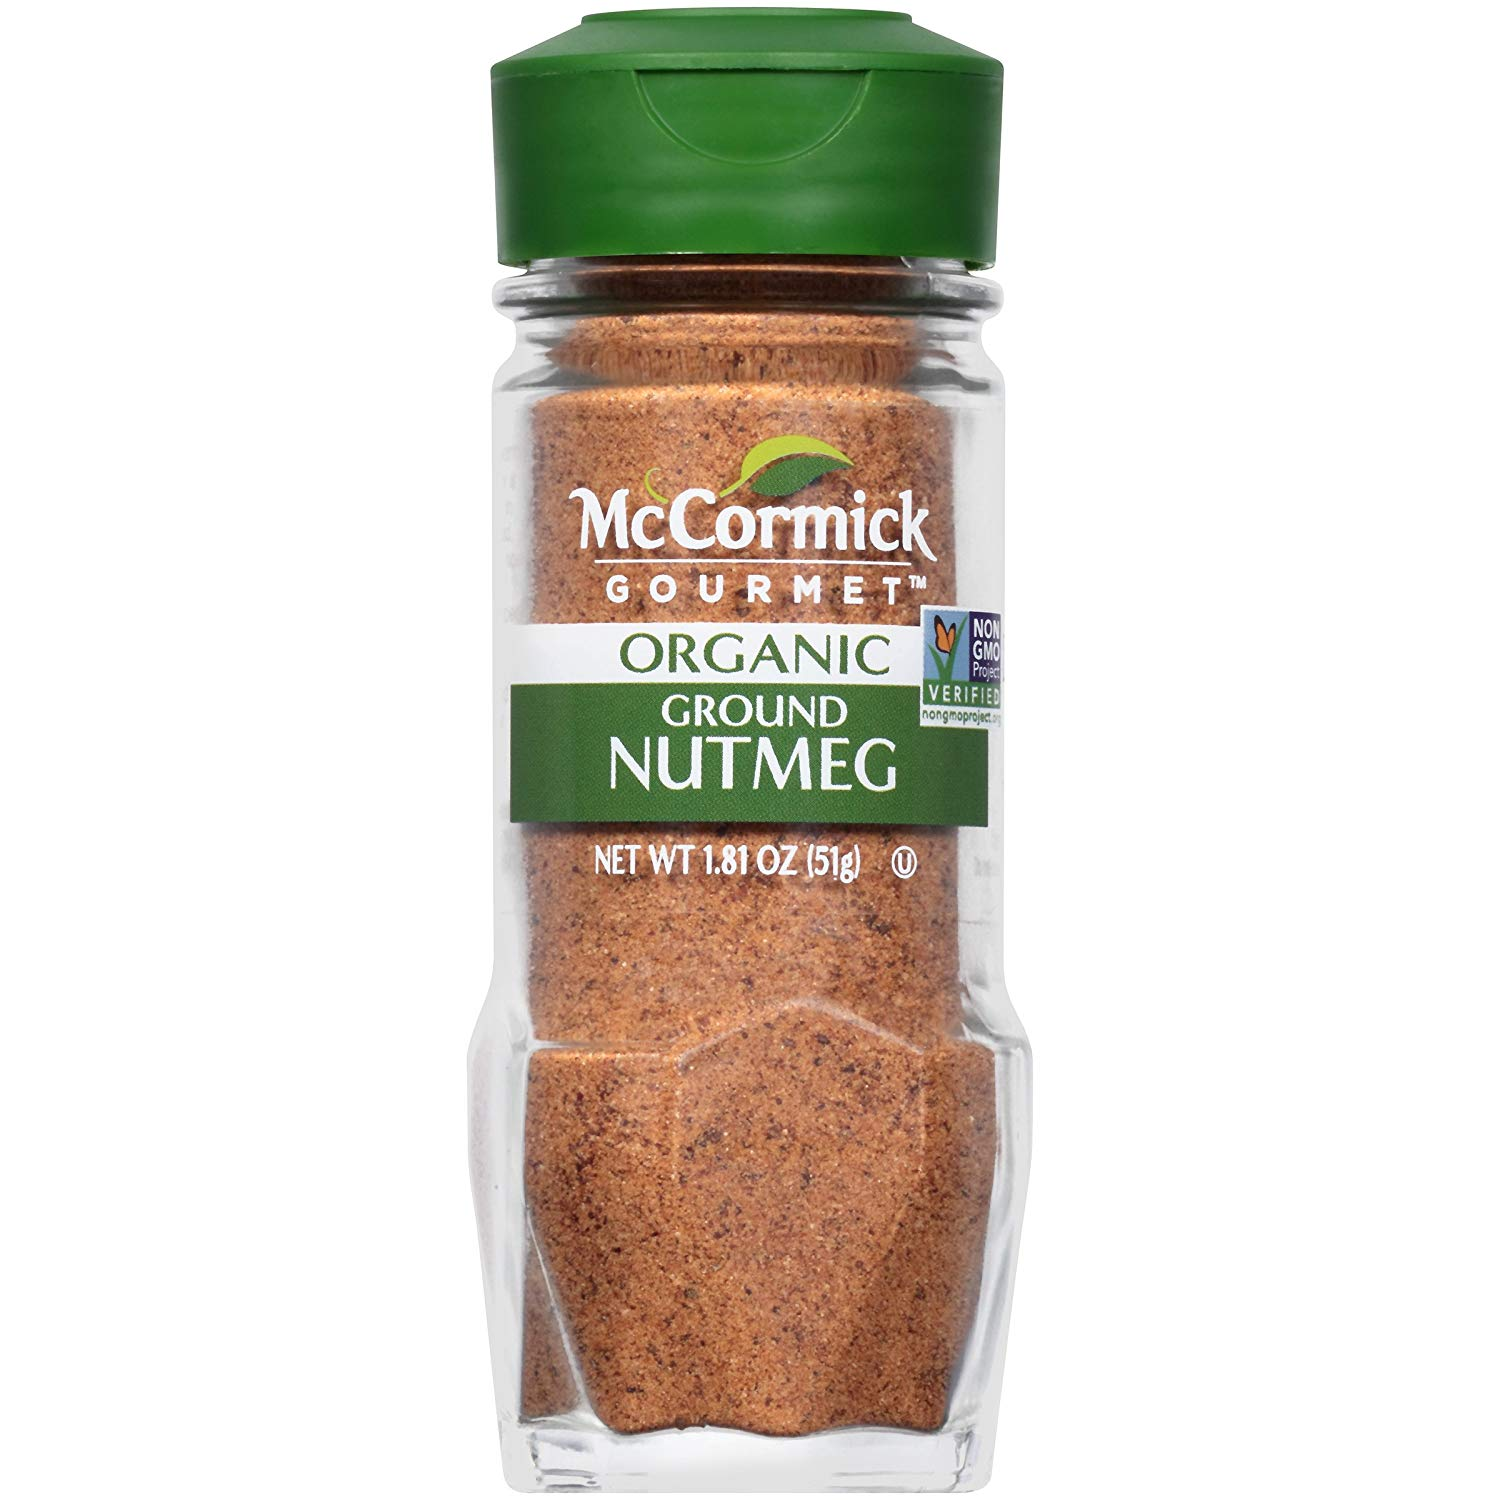 McCormick-Gourmet-Organic-Nutmeg-Ground